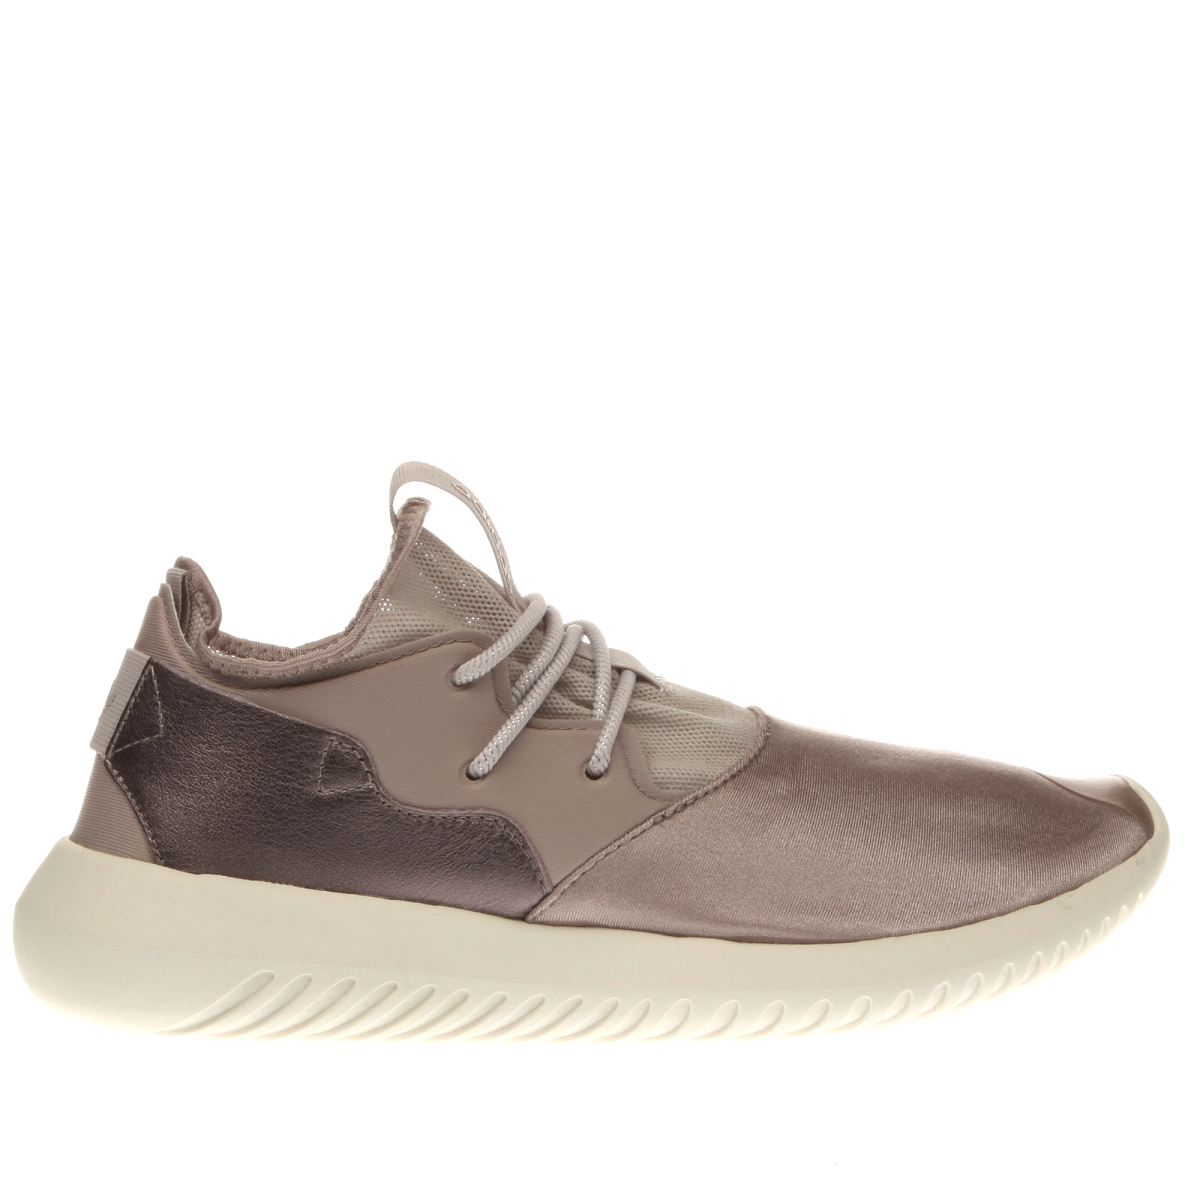 Adidas Women 's Tubular Defiant W Originals Casual